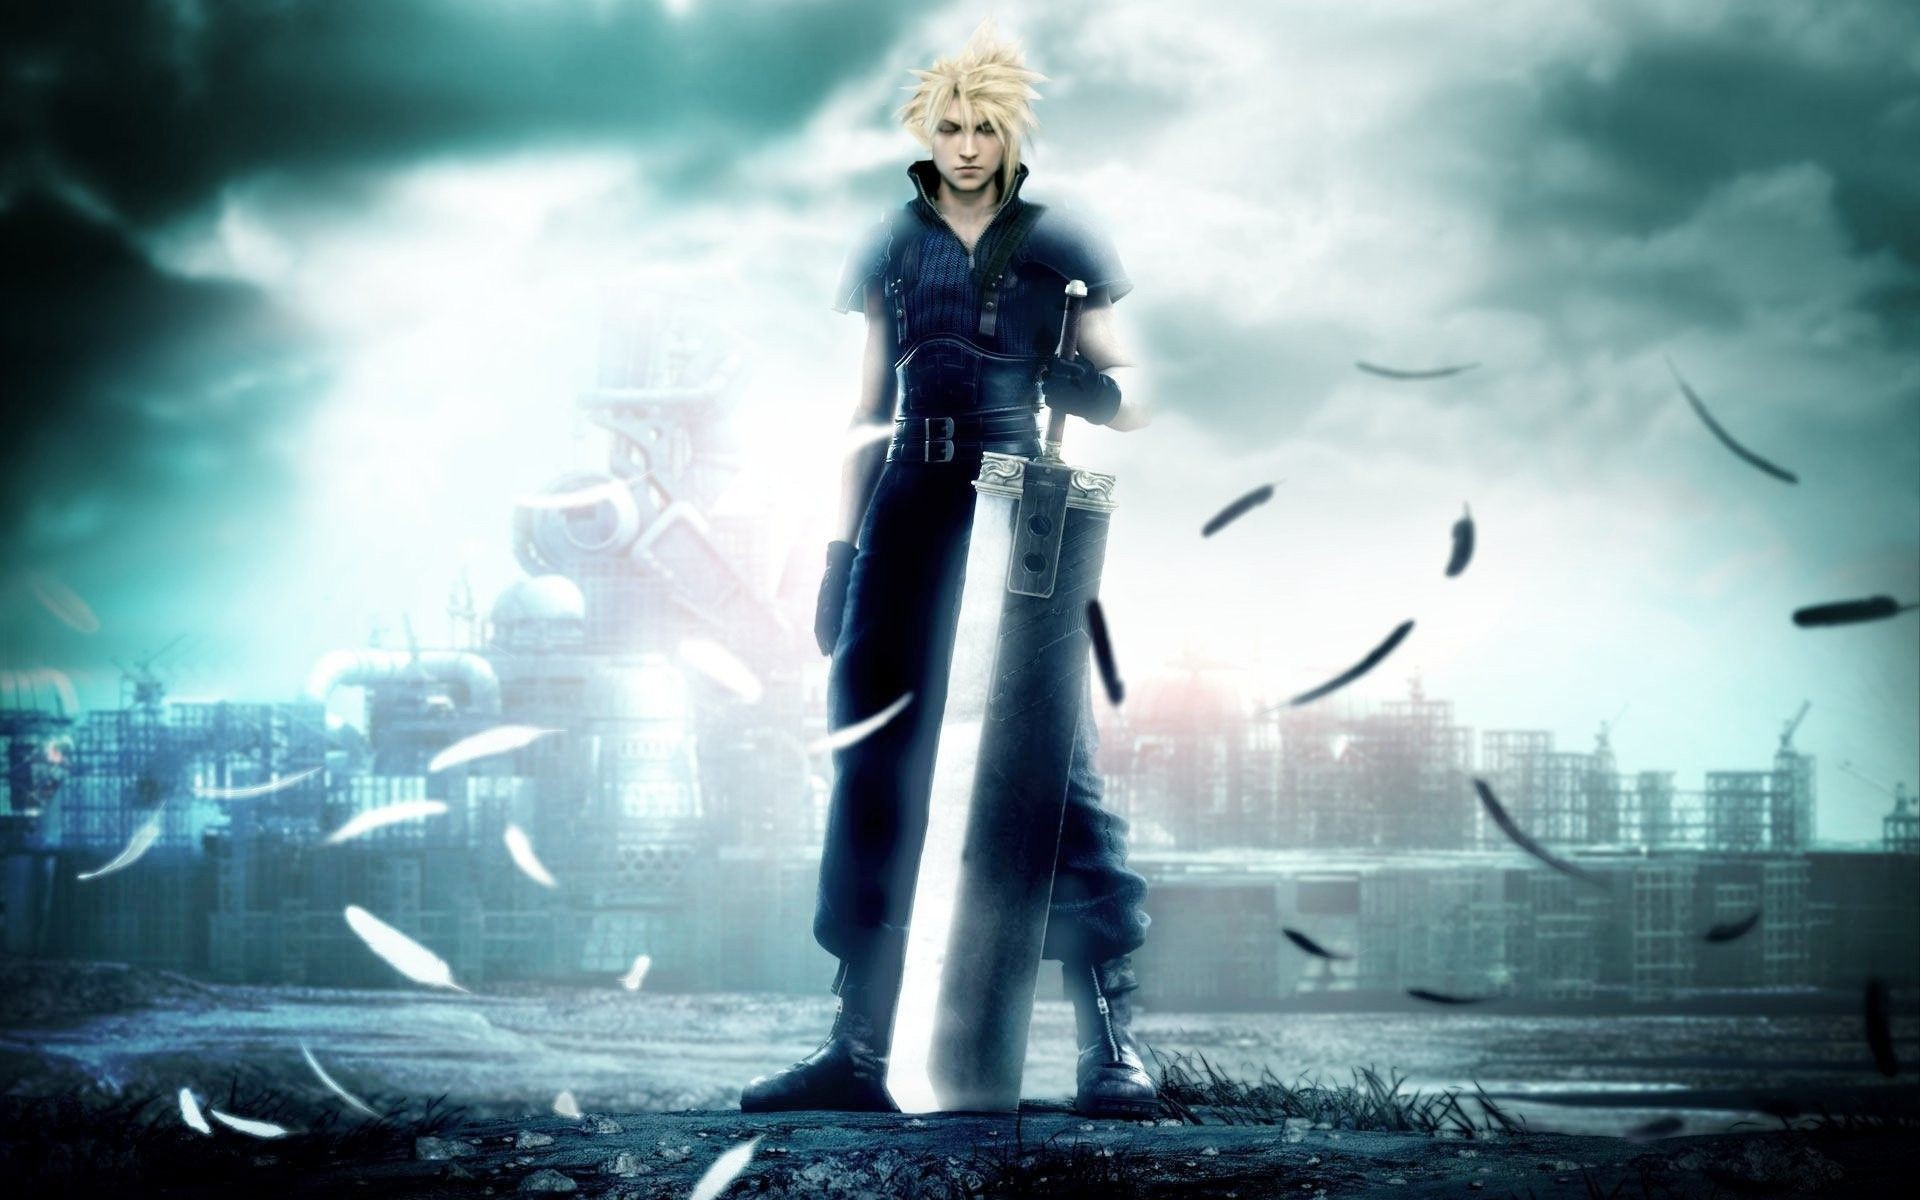 1920x1200 Wallpapers For Final Fantasy 7 Wallpaper Desktop